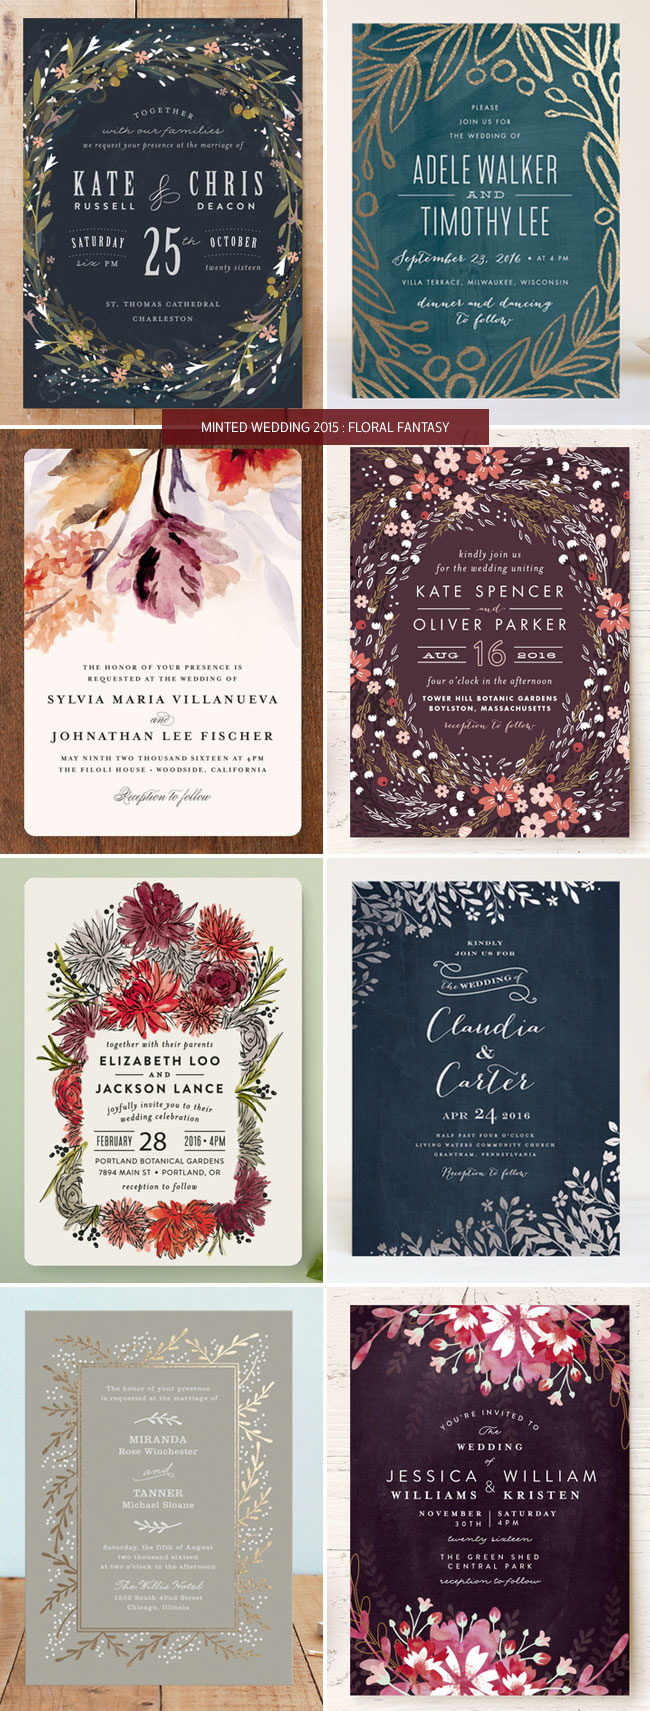 Floral Wedding Invitations from Minted